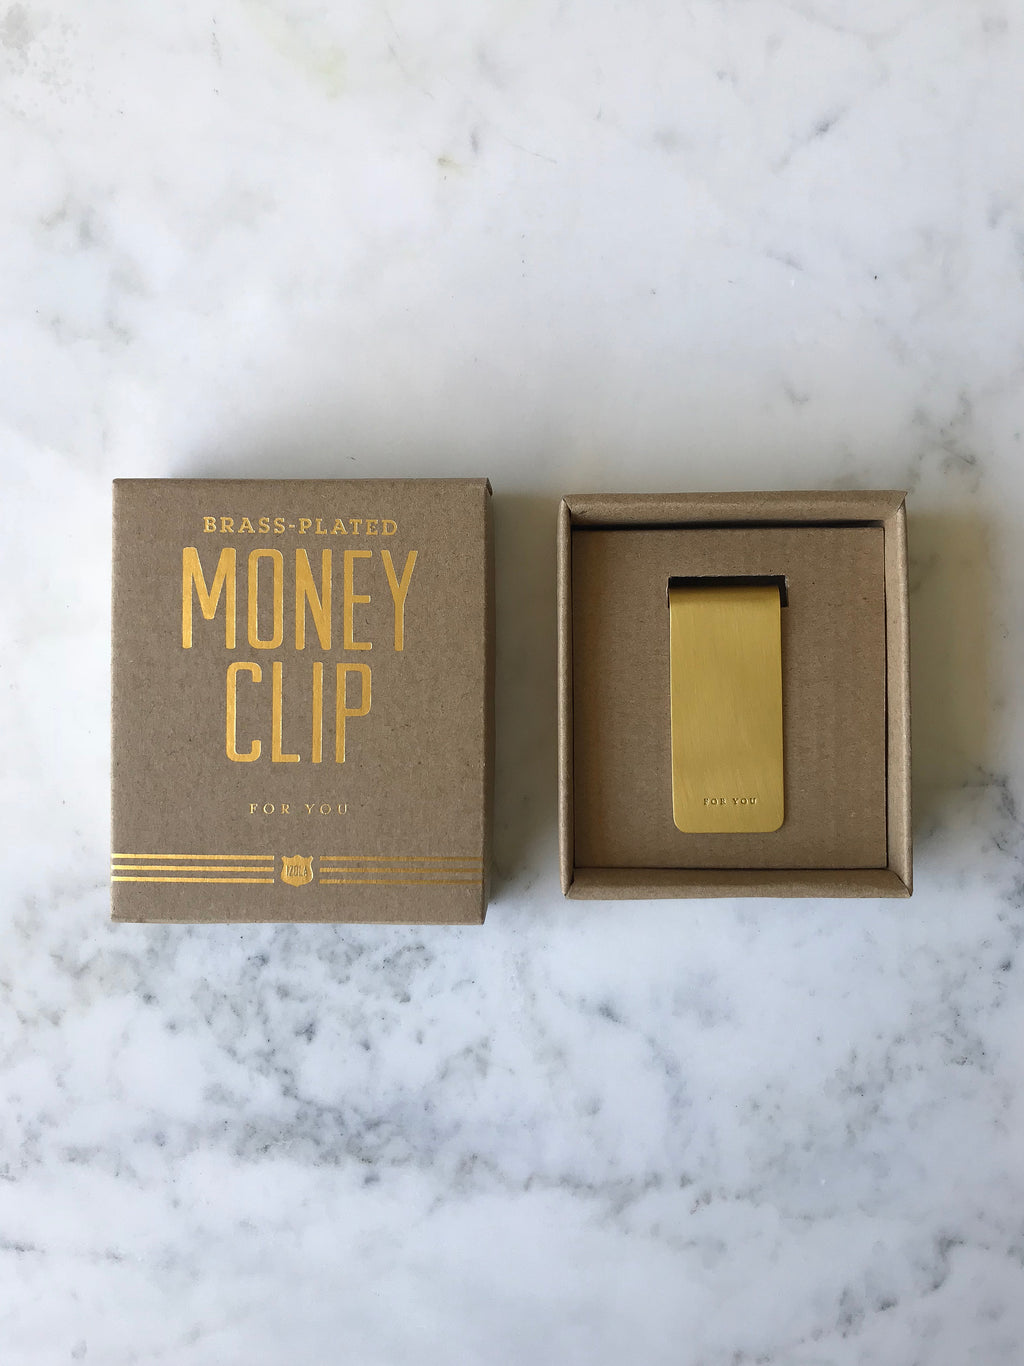 For You Money Clip